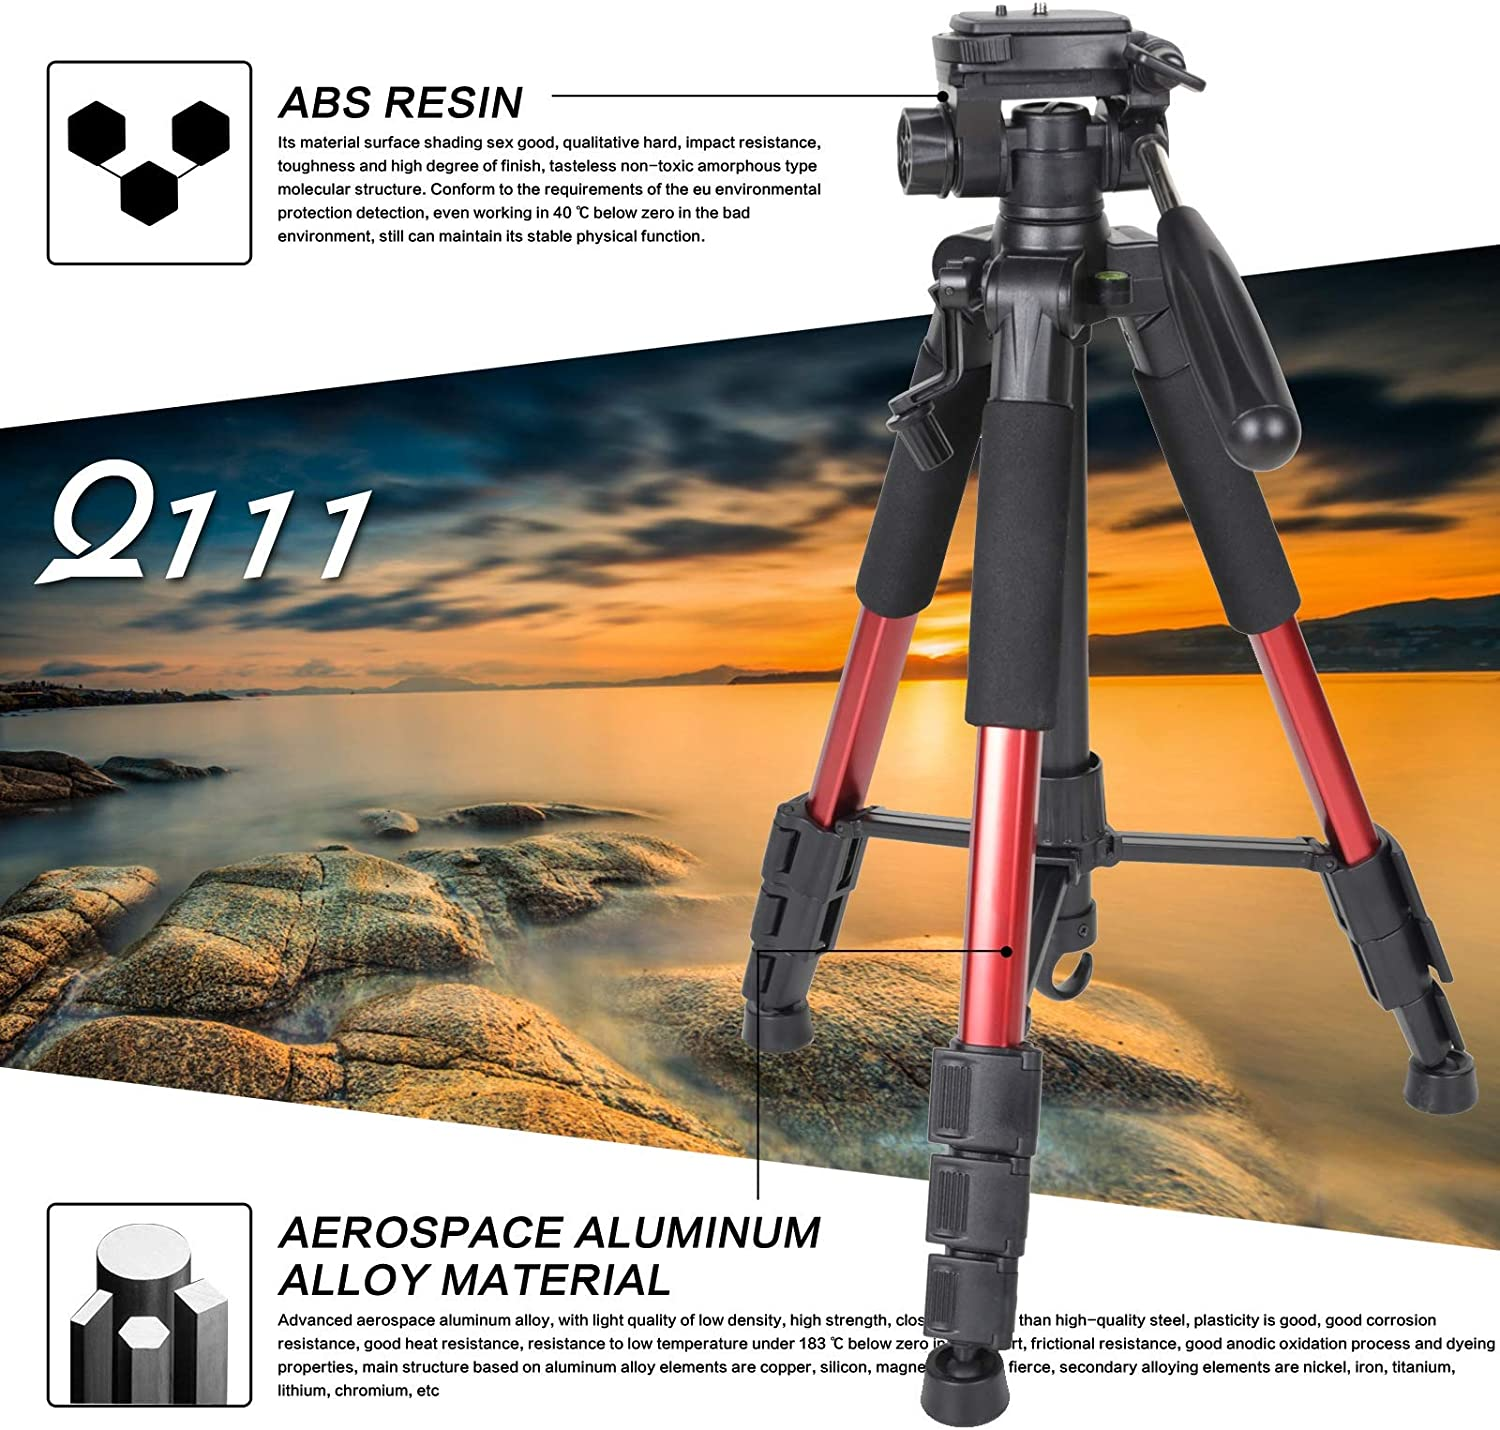 Mhwlai Tripod Lightweight and Compact Travel Portable Camera Tripod Suitable for Canon Nikon Sony SLR Camera Video with Carrying case red